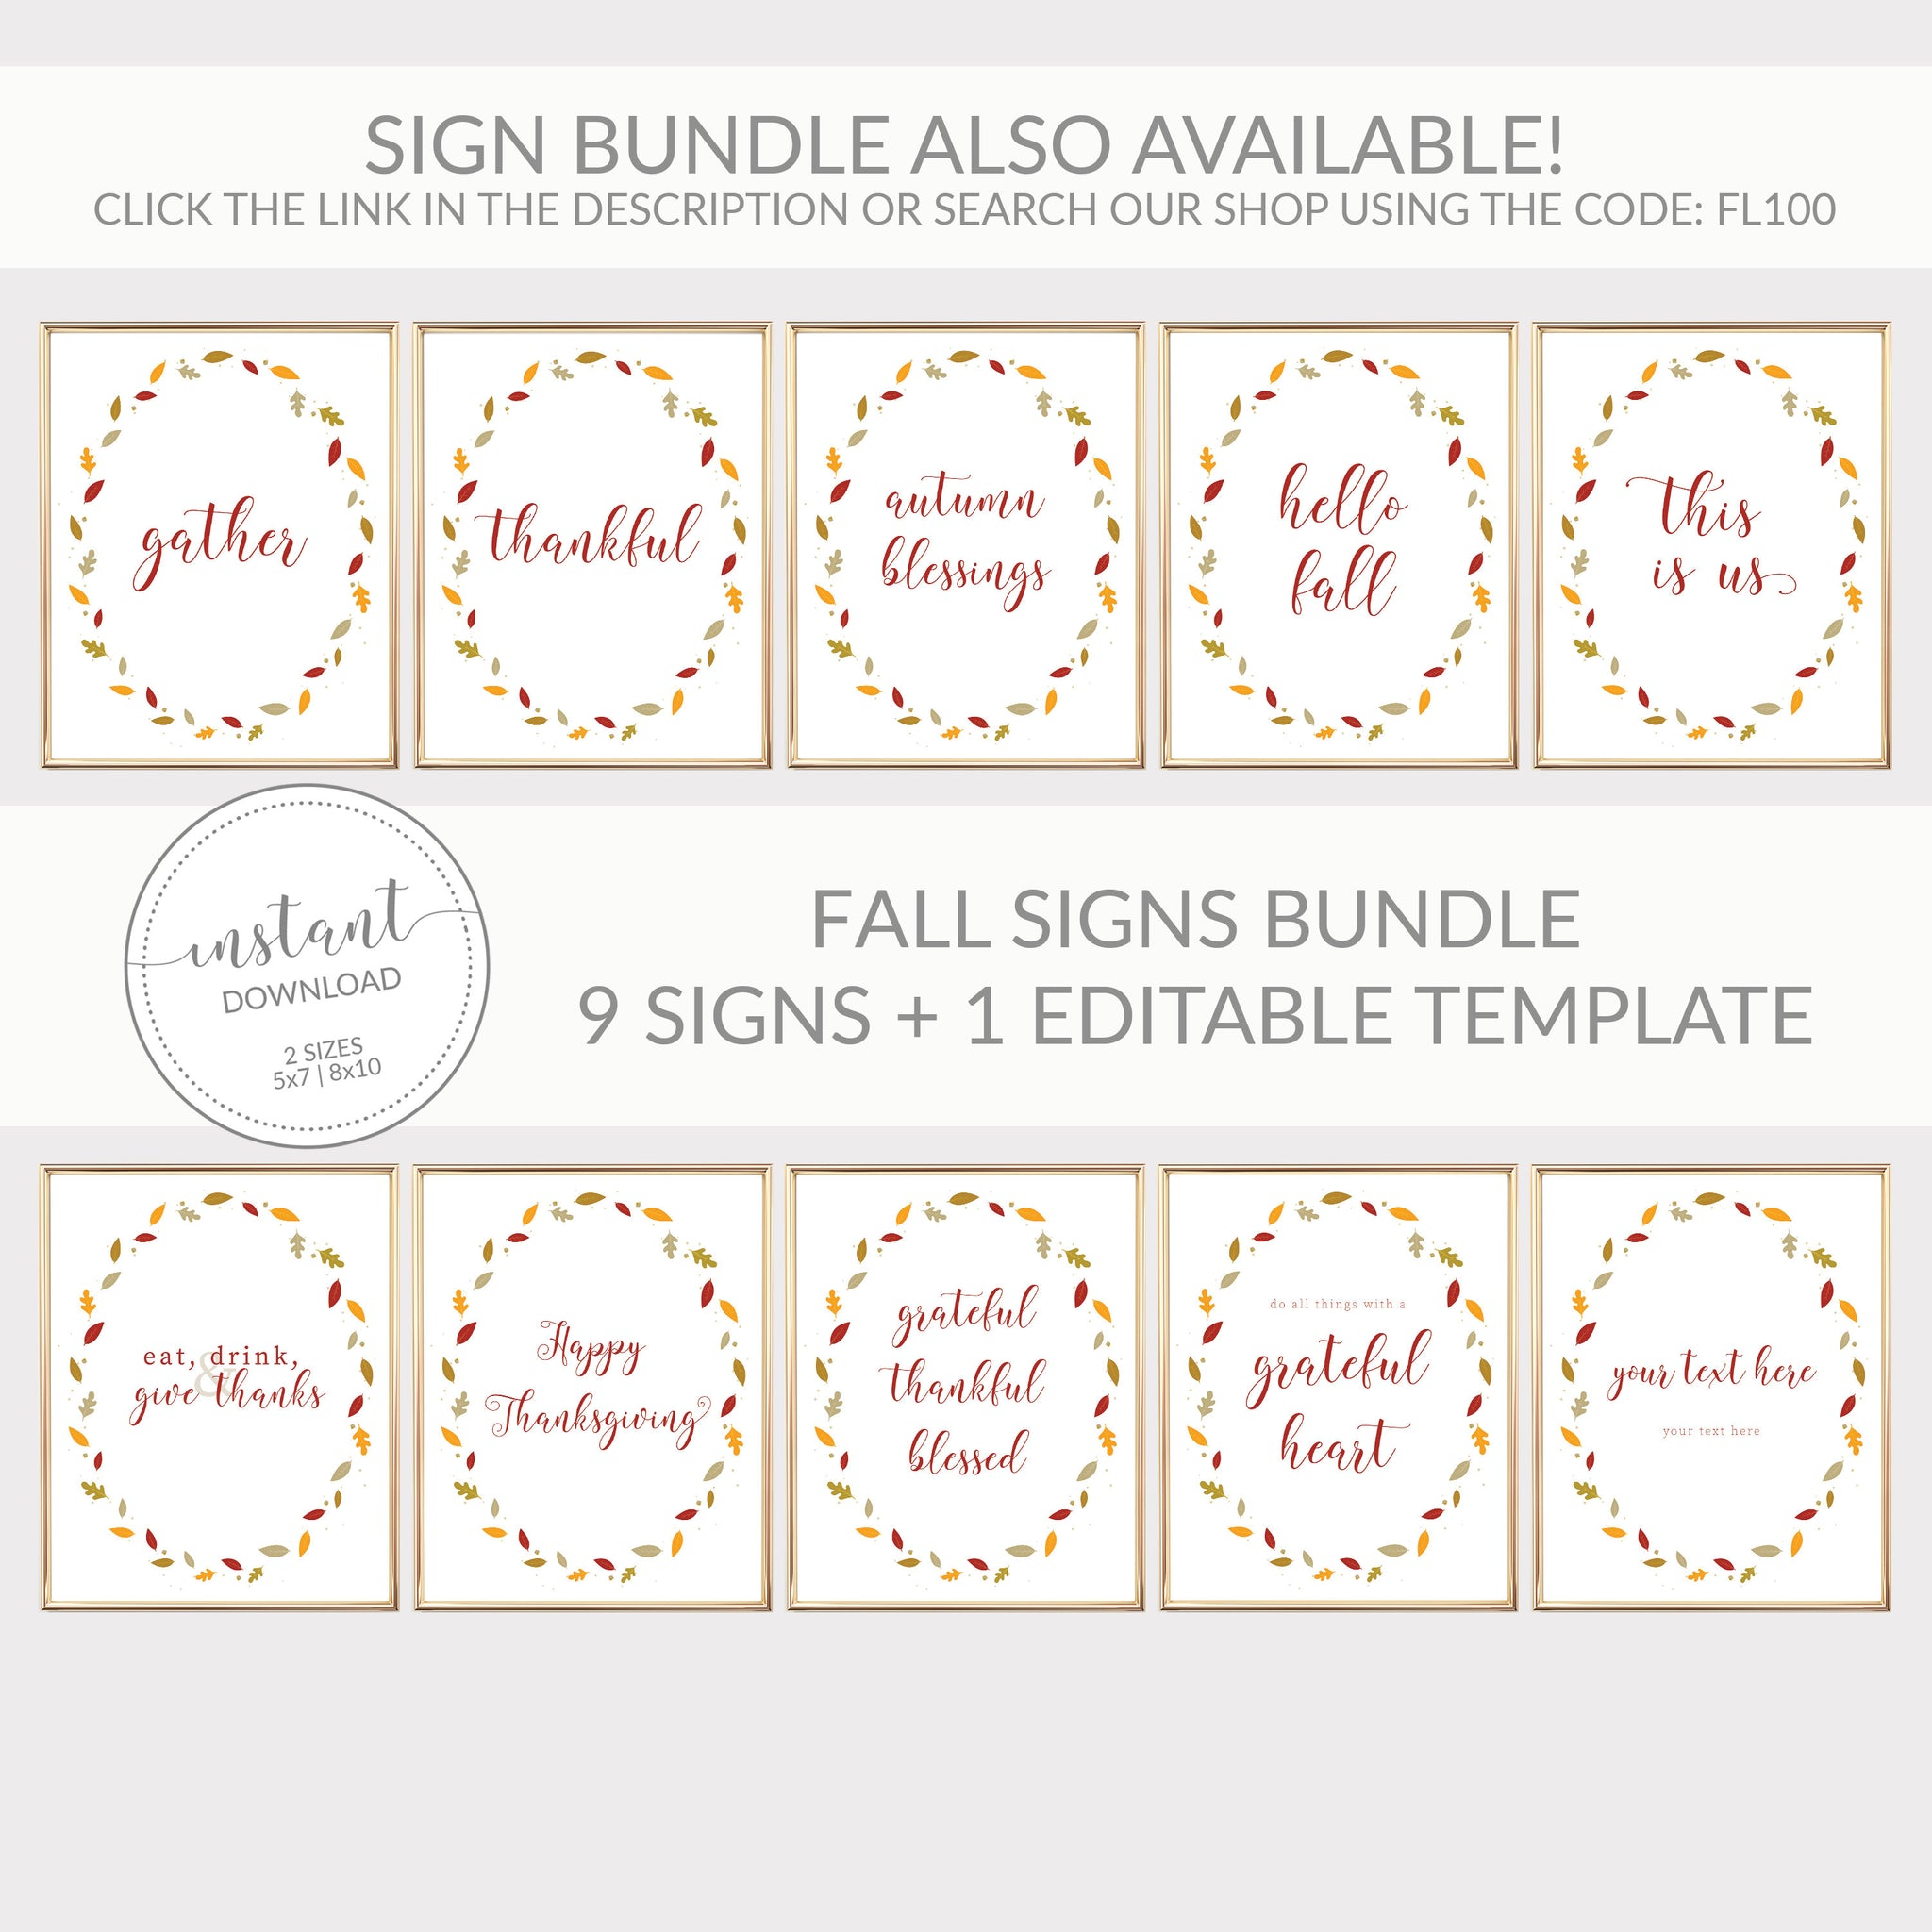 Friendsgiving Place Card Template, Friendsgiving Decorations, Friendsgiving Decor Dinner Printable, Editable DIGITAL DOWNLOAD - FL100